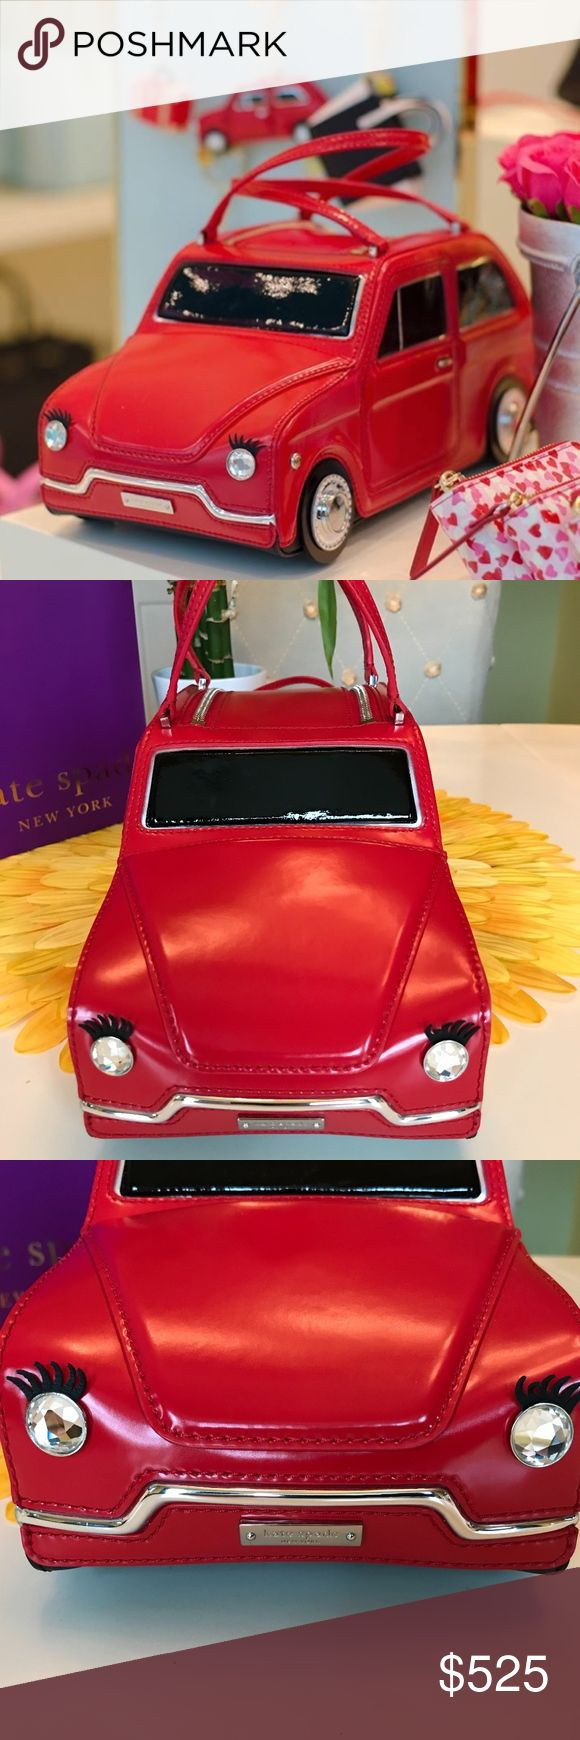 1956 chevy bel air dynomite classic muscle car for sale in - Kate Spade Rose Colered Glasses Red Car Nwt Nwt